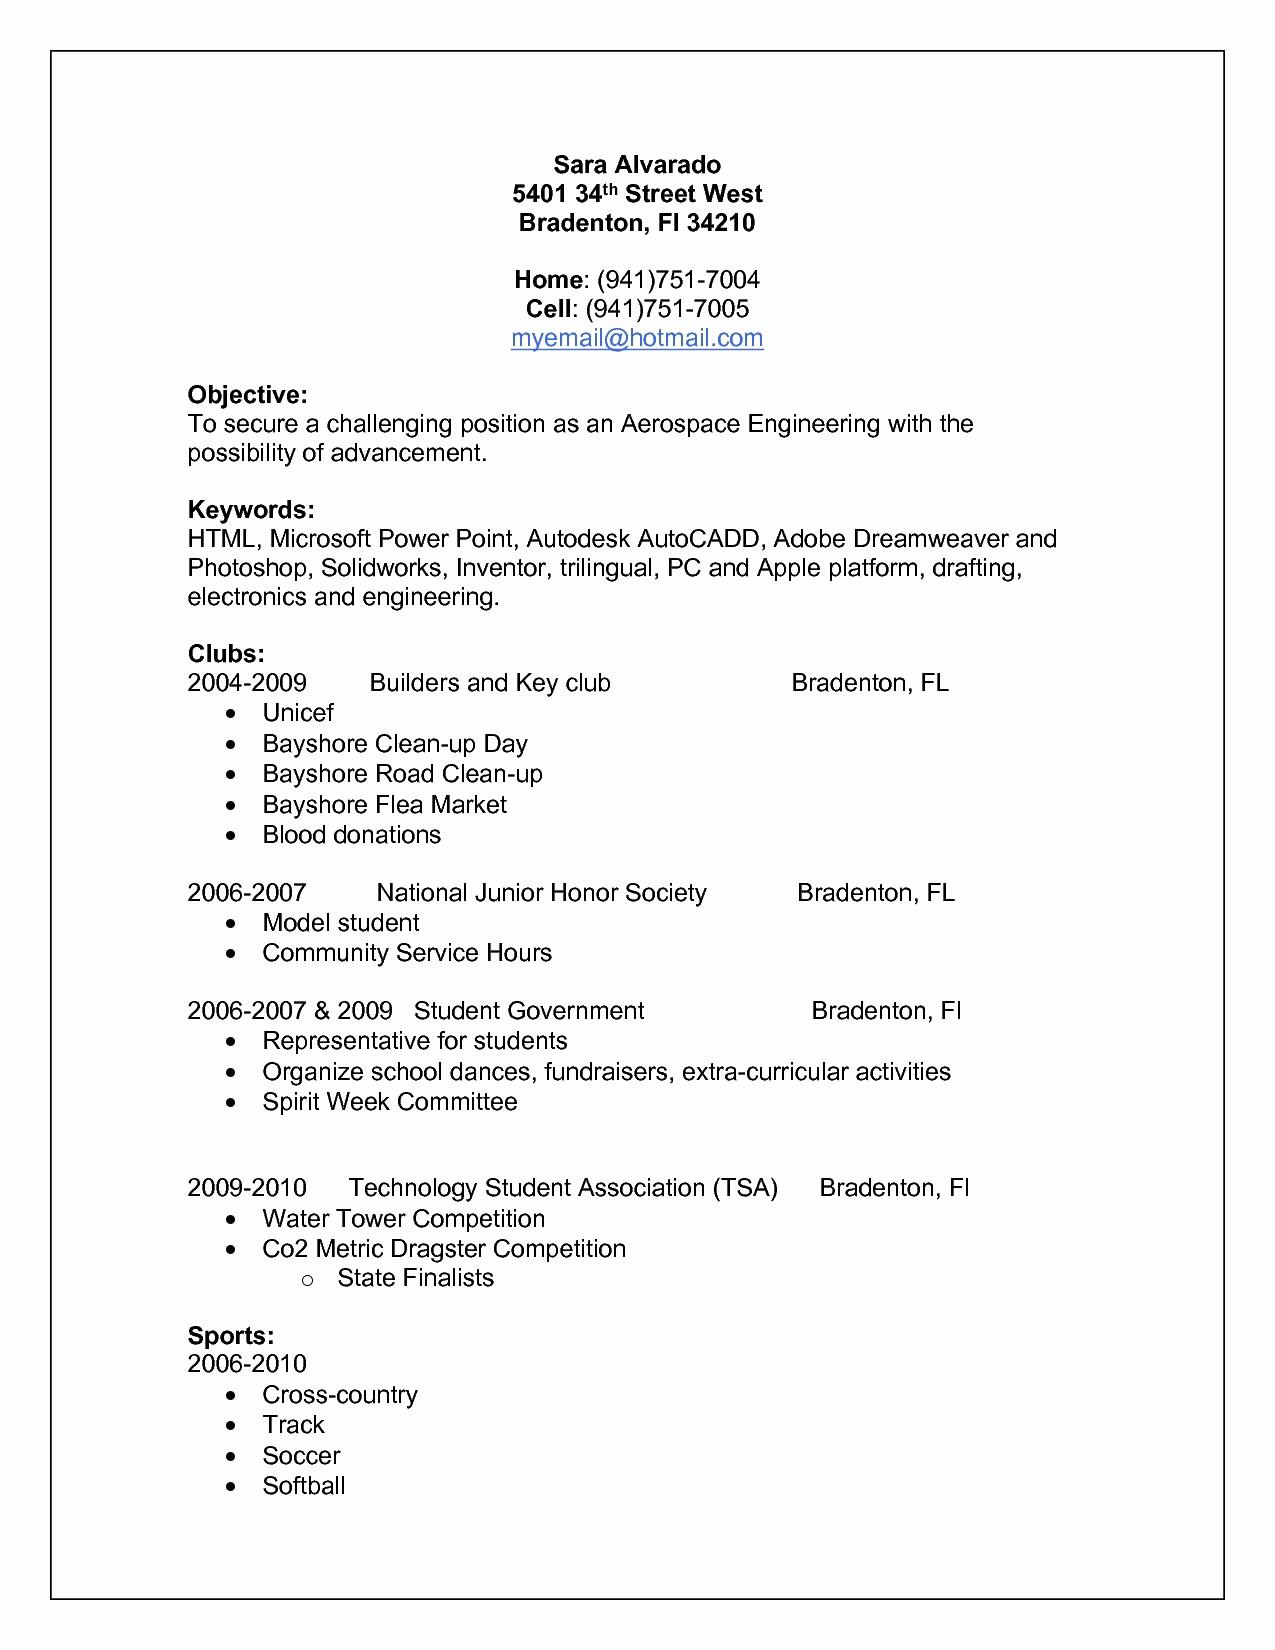 Resume Template for Engineers - Resume Educational Background format Awesome Lovely Pr Resume